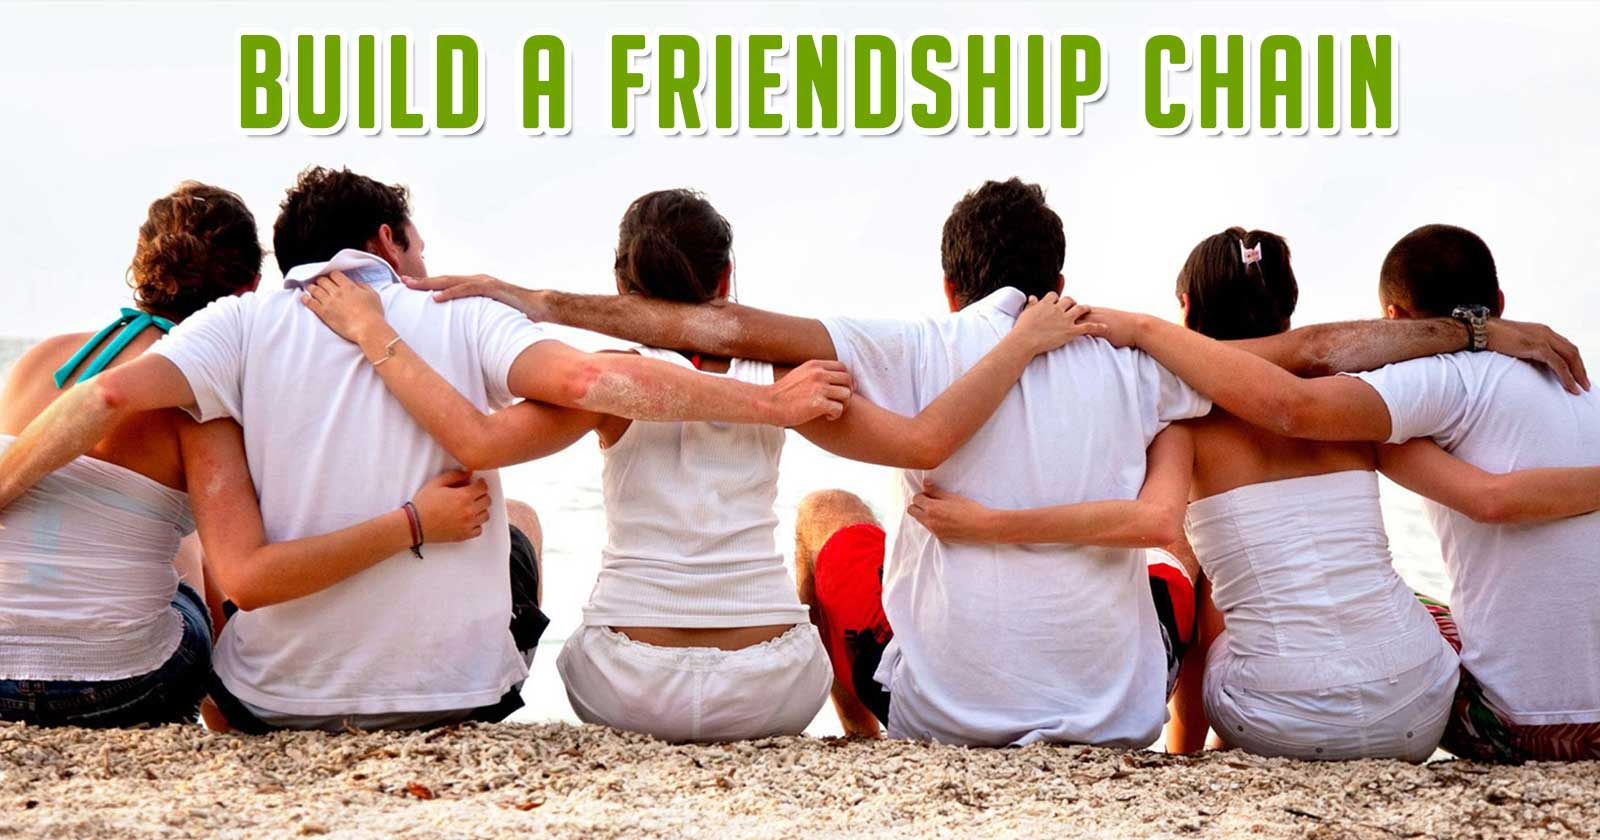 Build a Friendship Chain